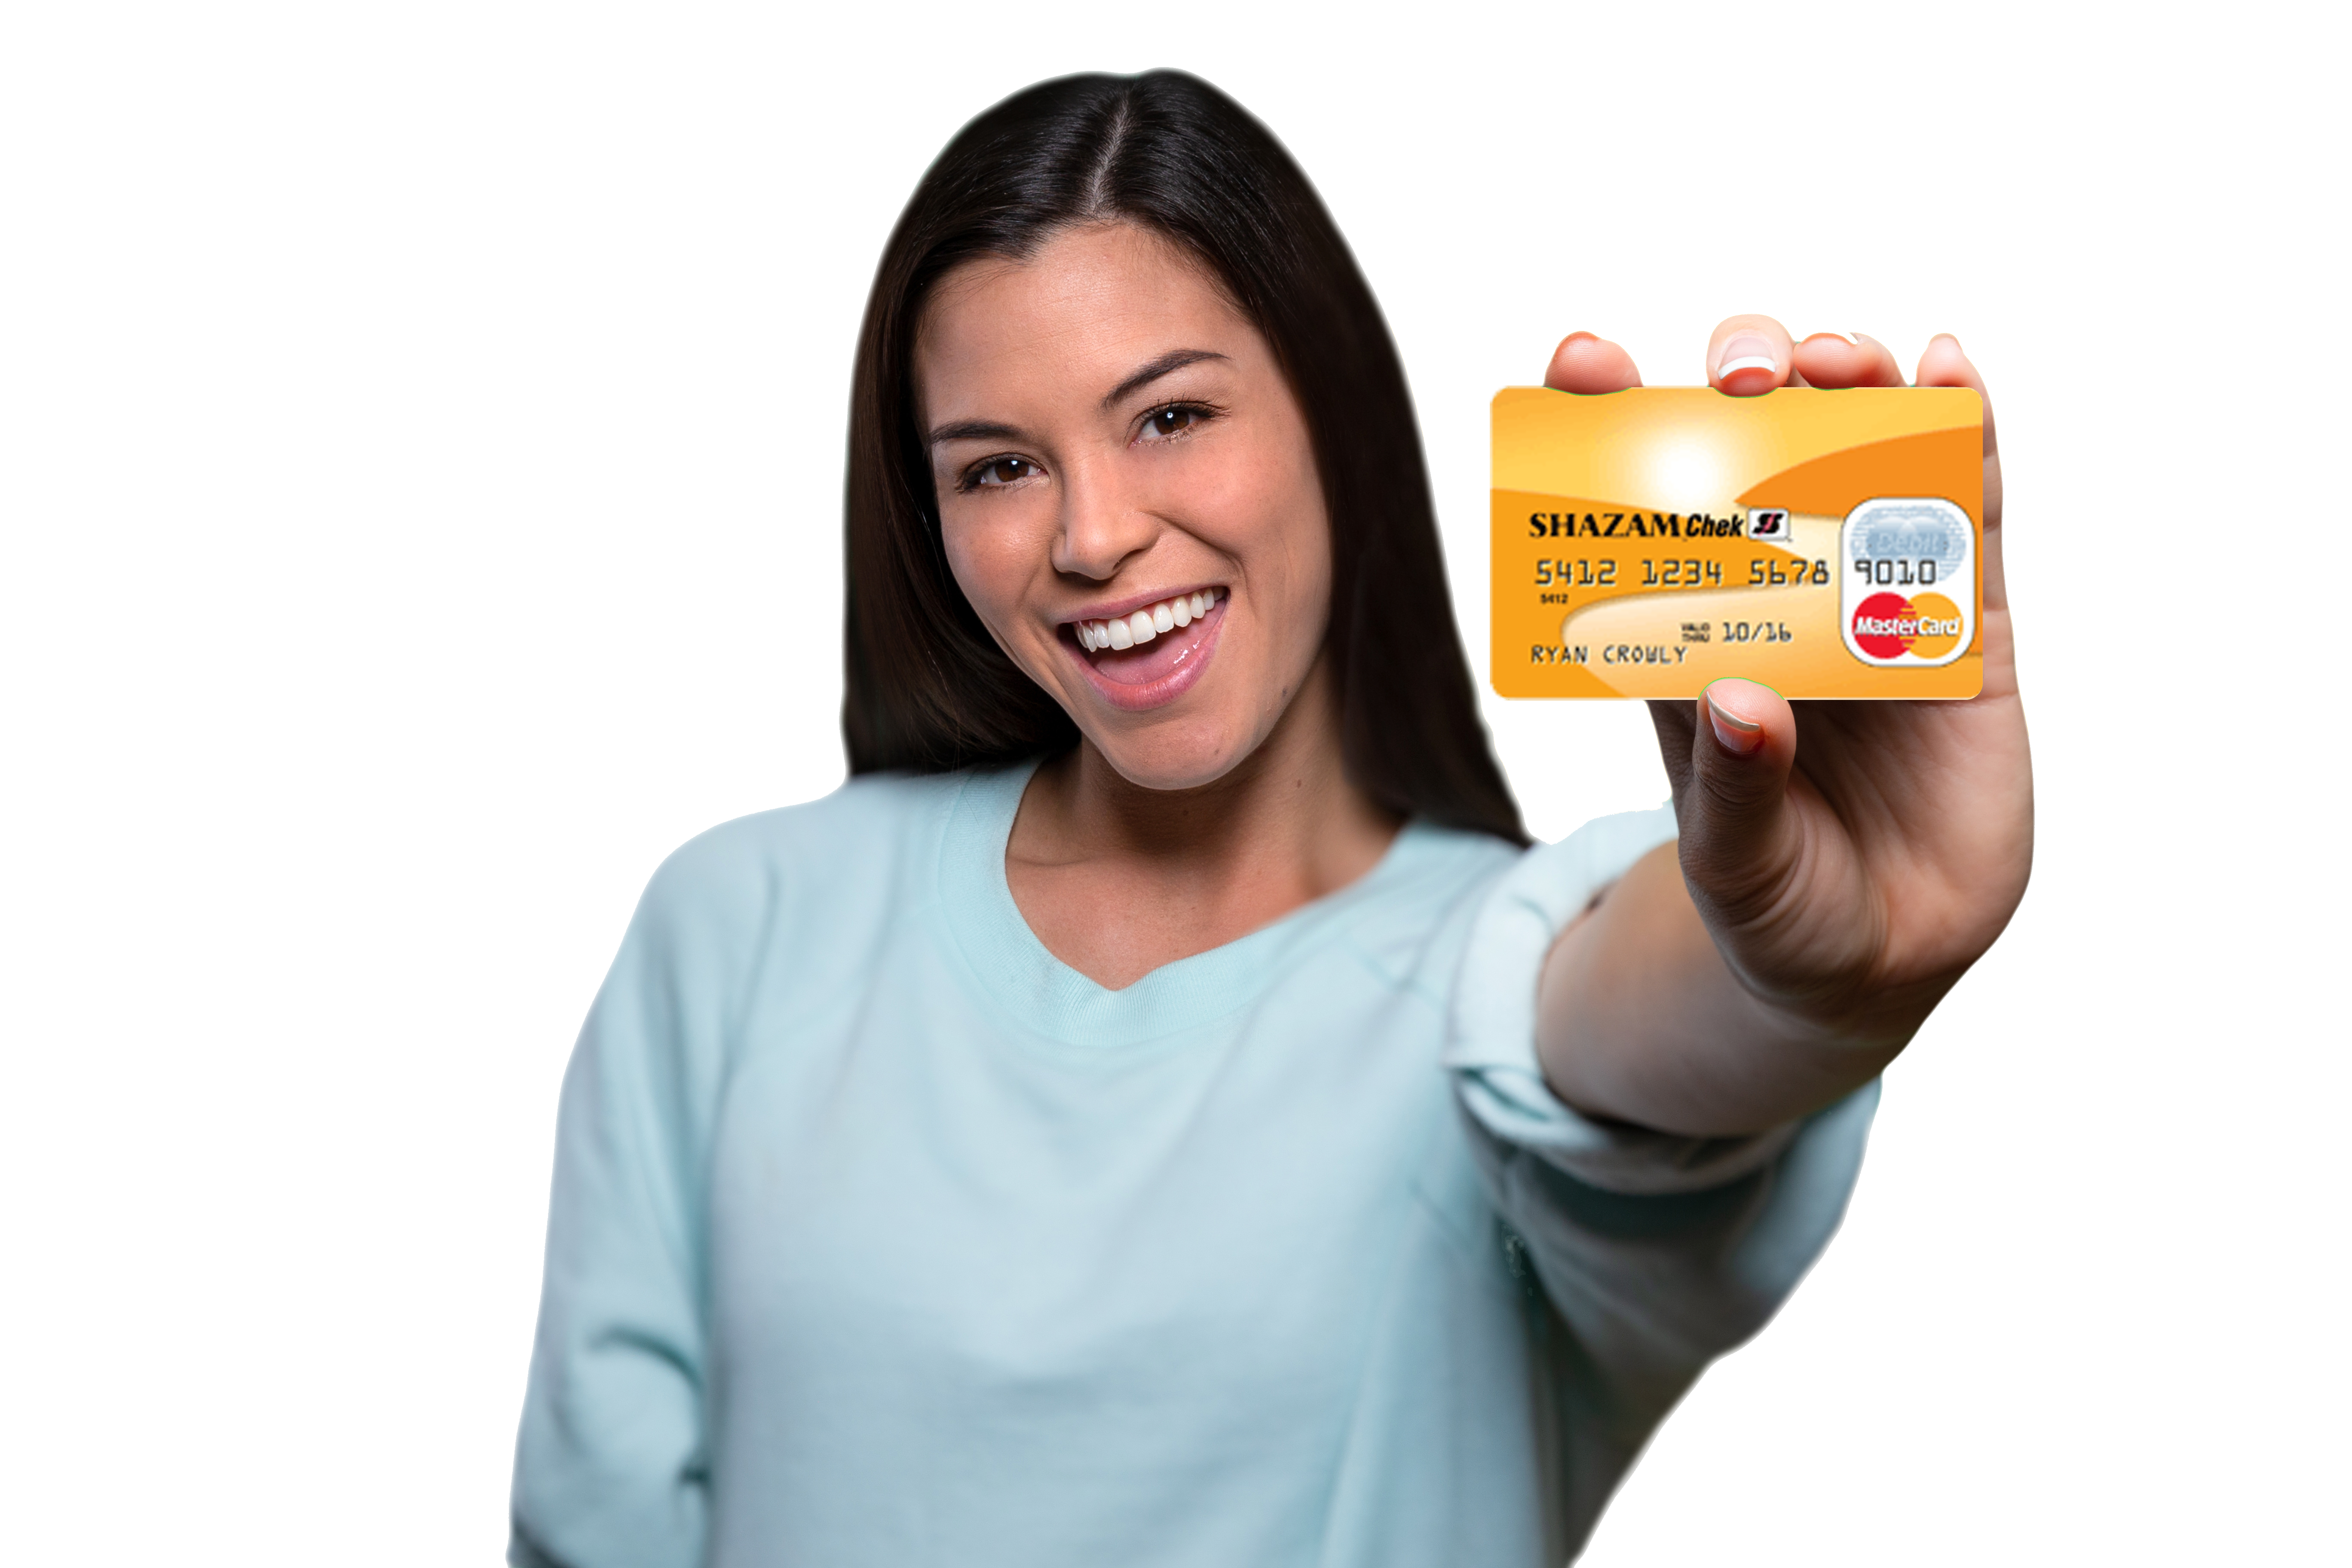 Woman holding Shazam Card